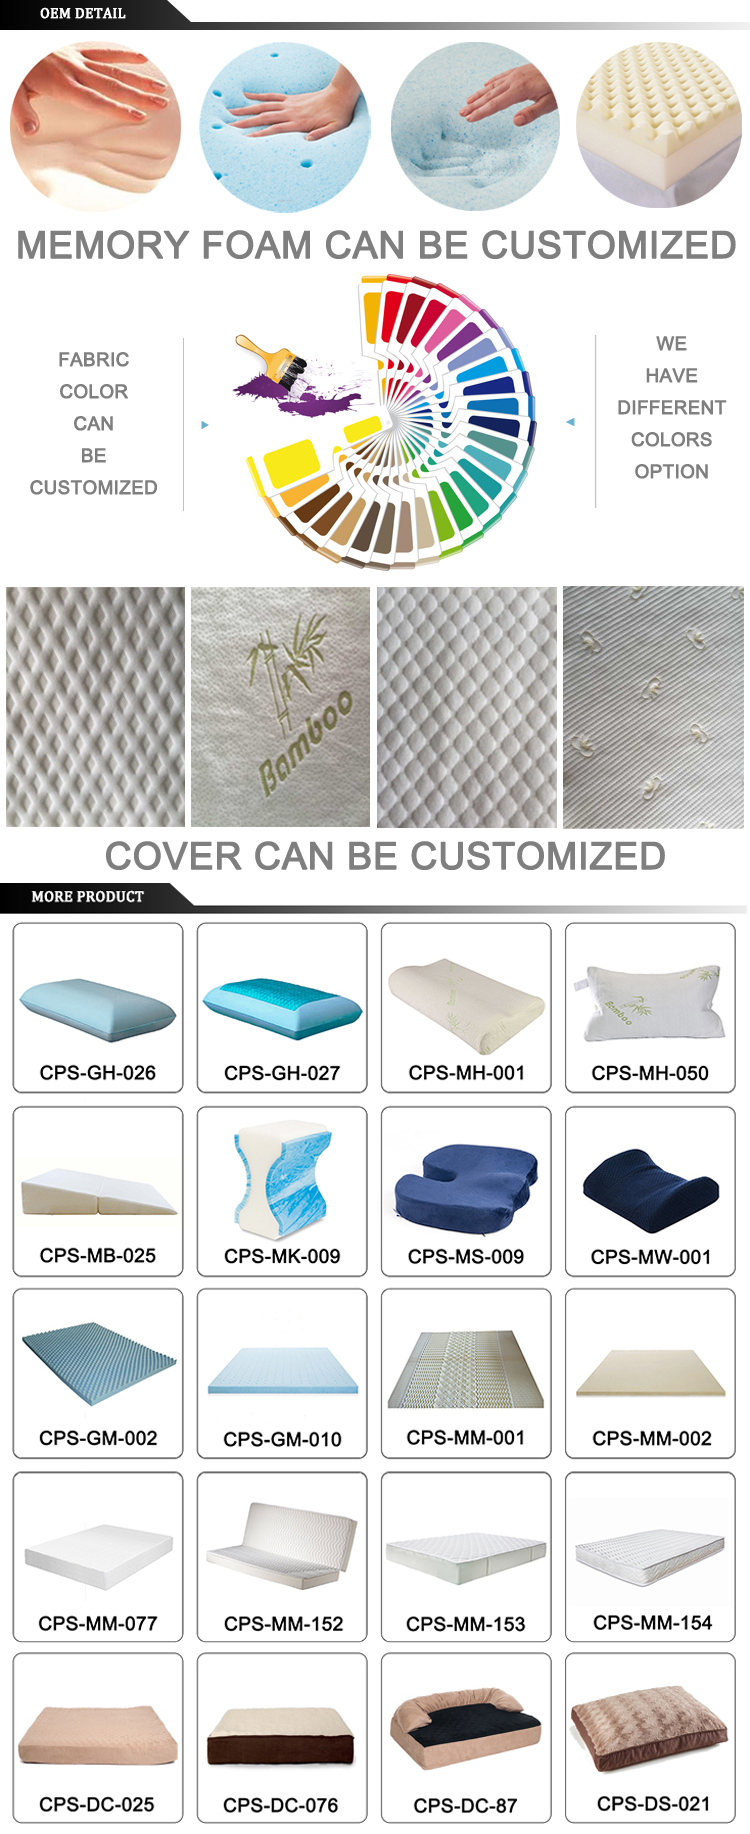 Cooling wholesale mattress manufacturer from china, mattress sizes, hotel mattress